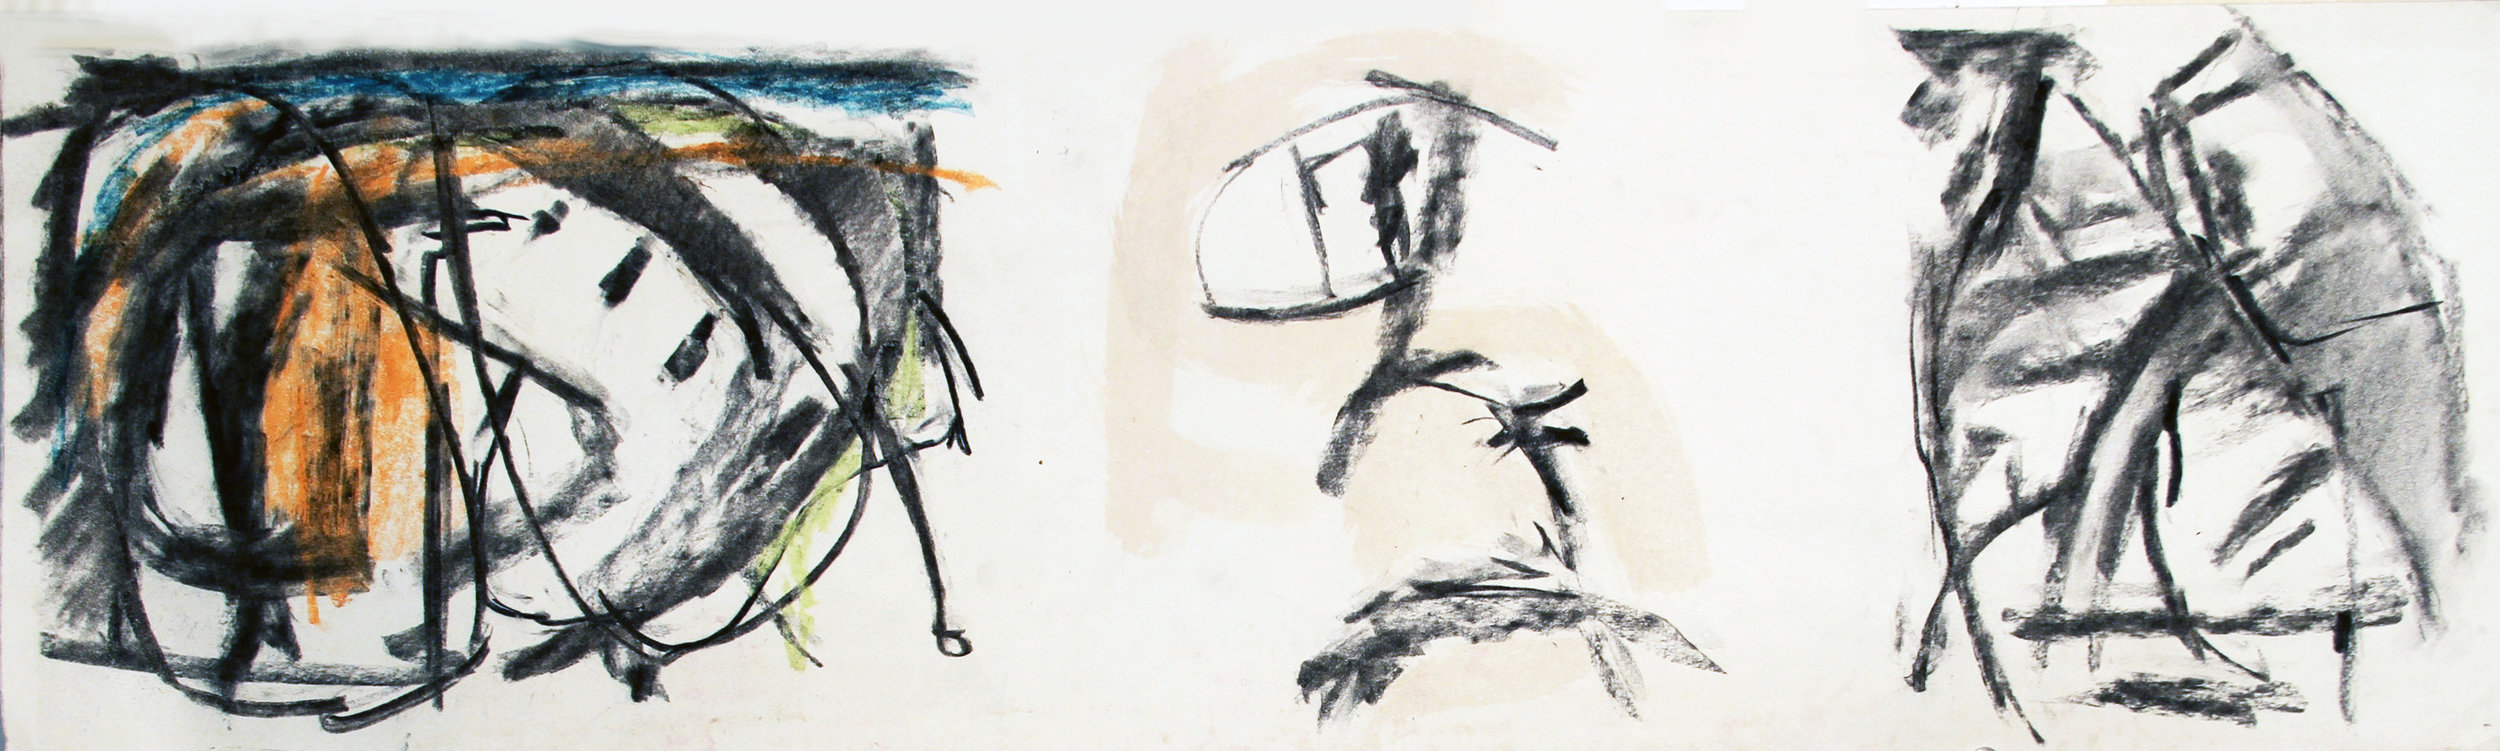 THE DARK SIDE OF THE MOON  Mixed Media on Paper 9 x 30 inches (23 x 76 cm)